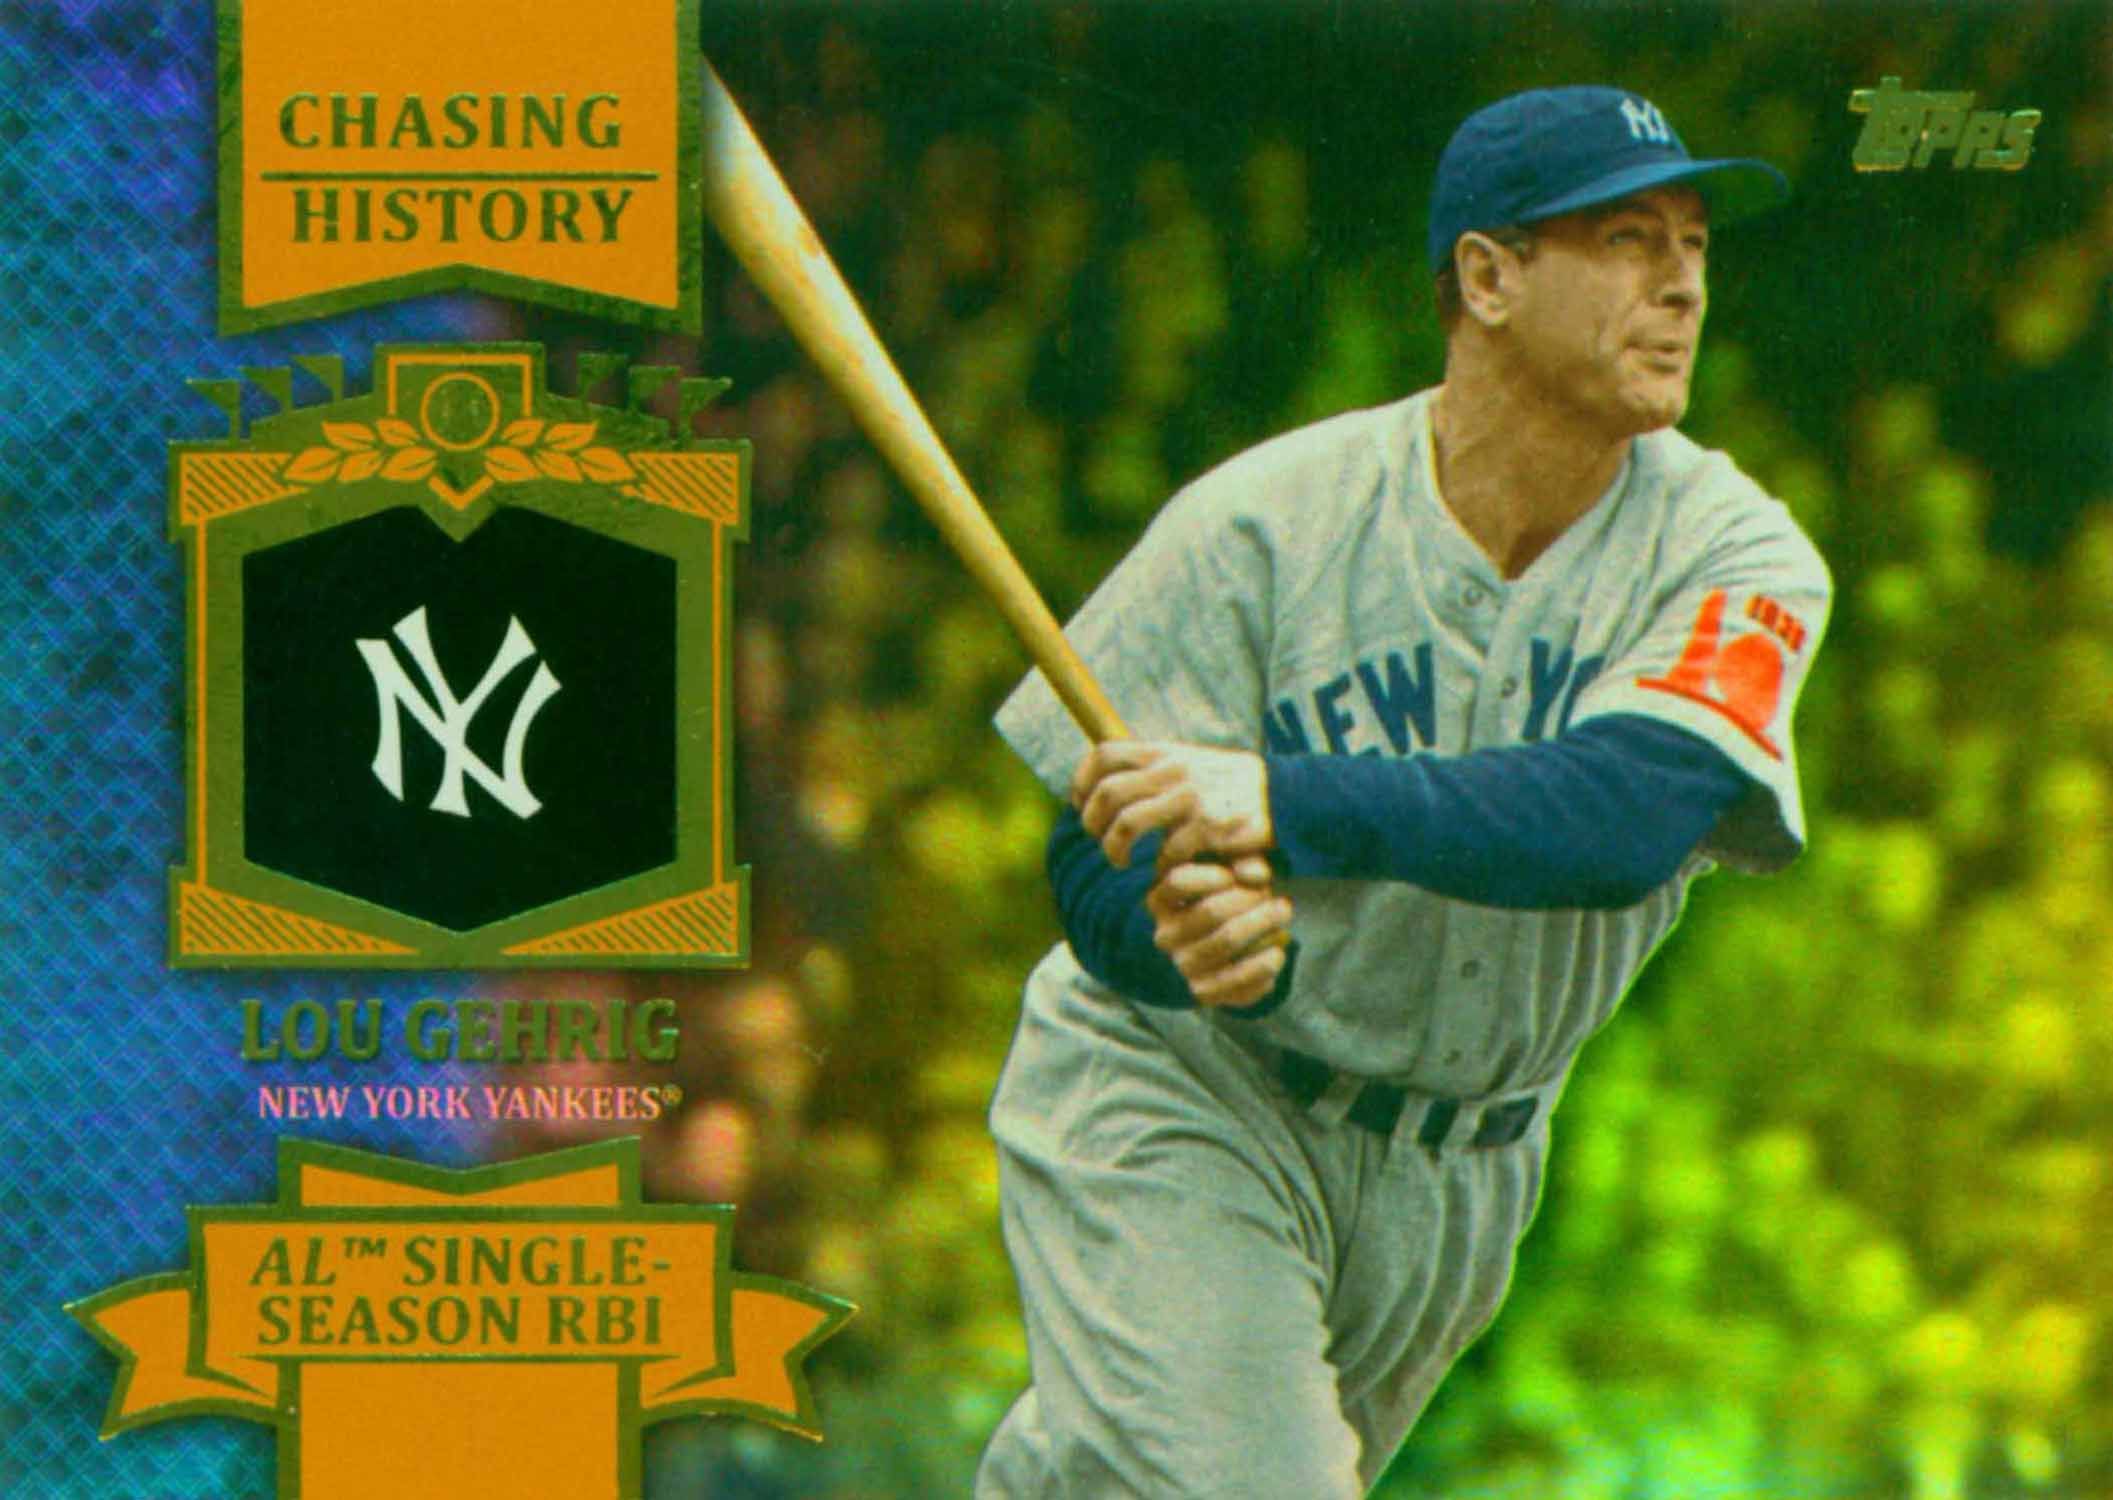 2013 Topps Chasing History Holofoil Gold